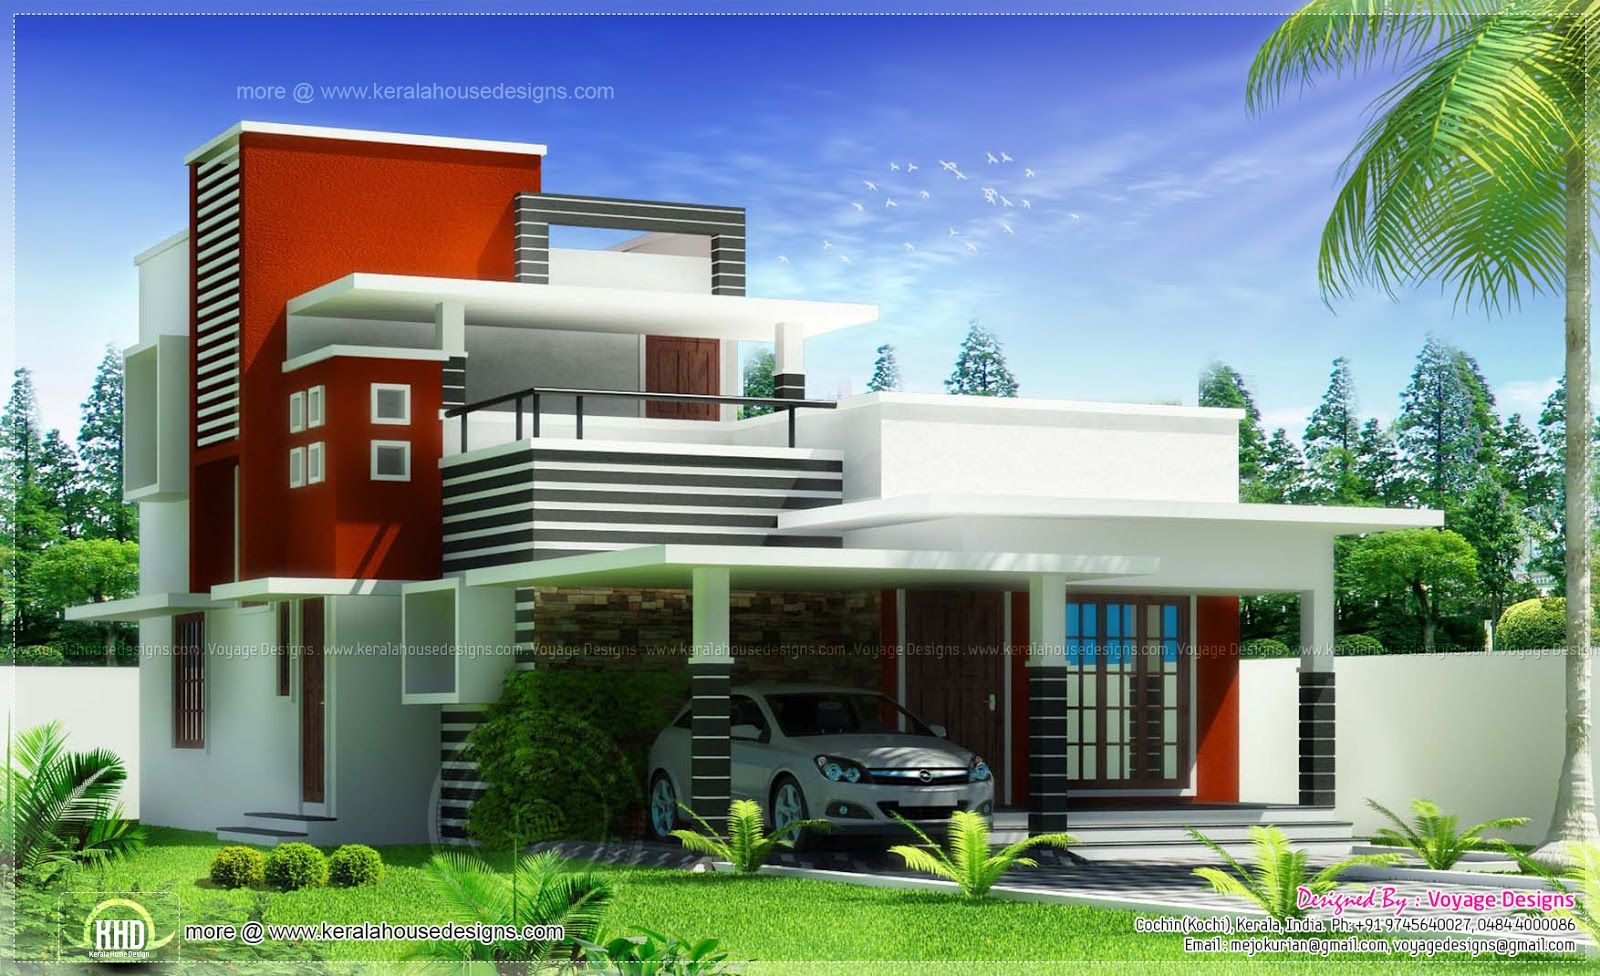 Kerala house designs architecture pinterest kerala for Modern home plans and designs